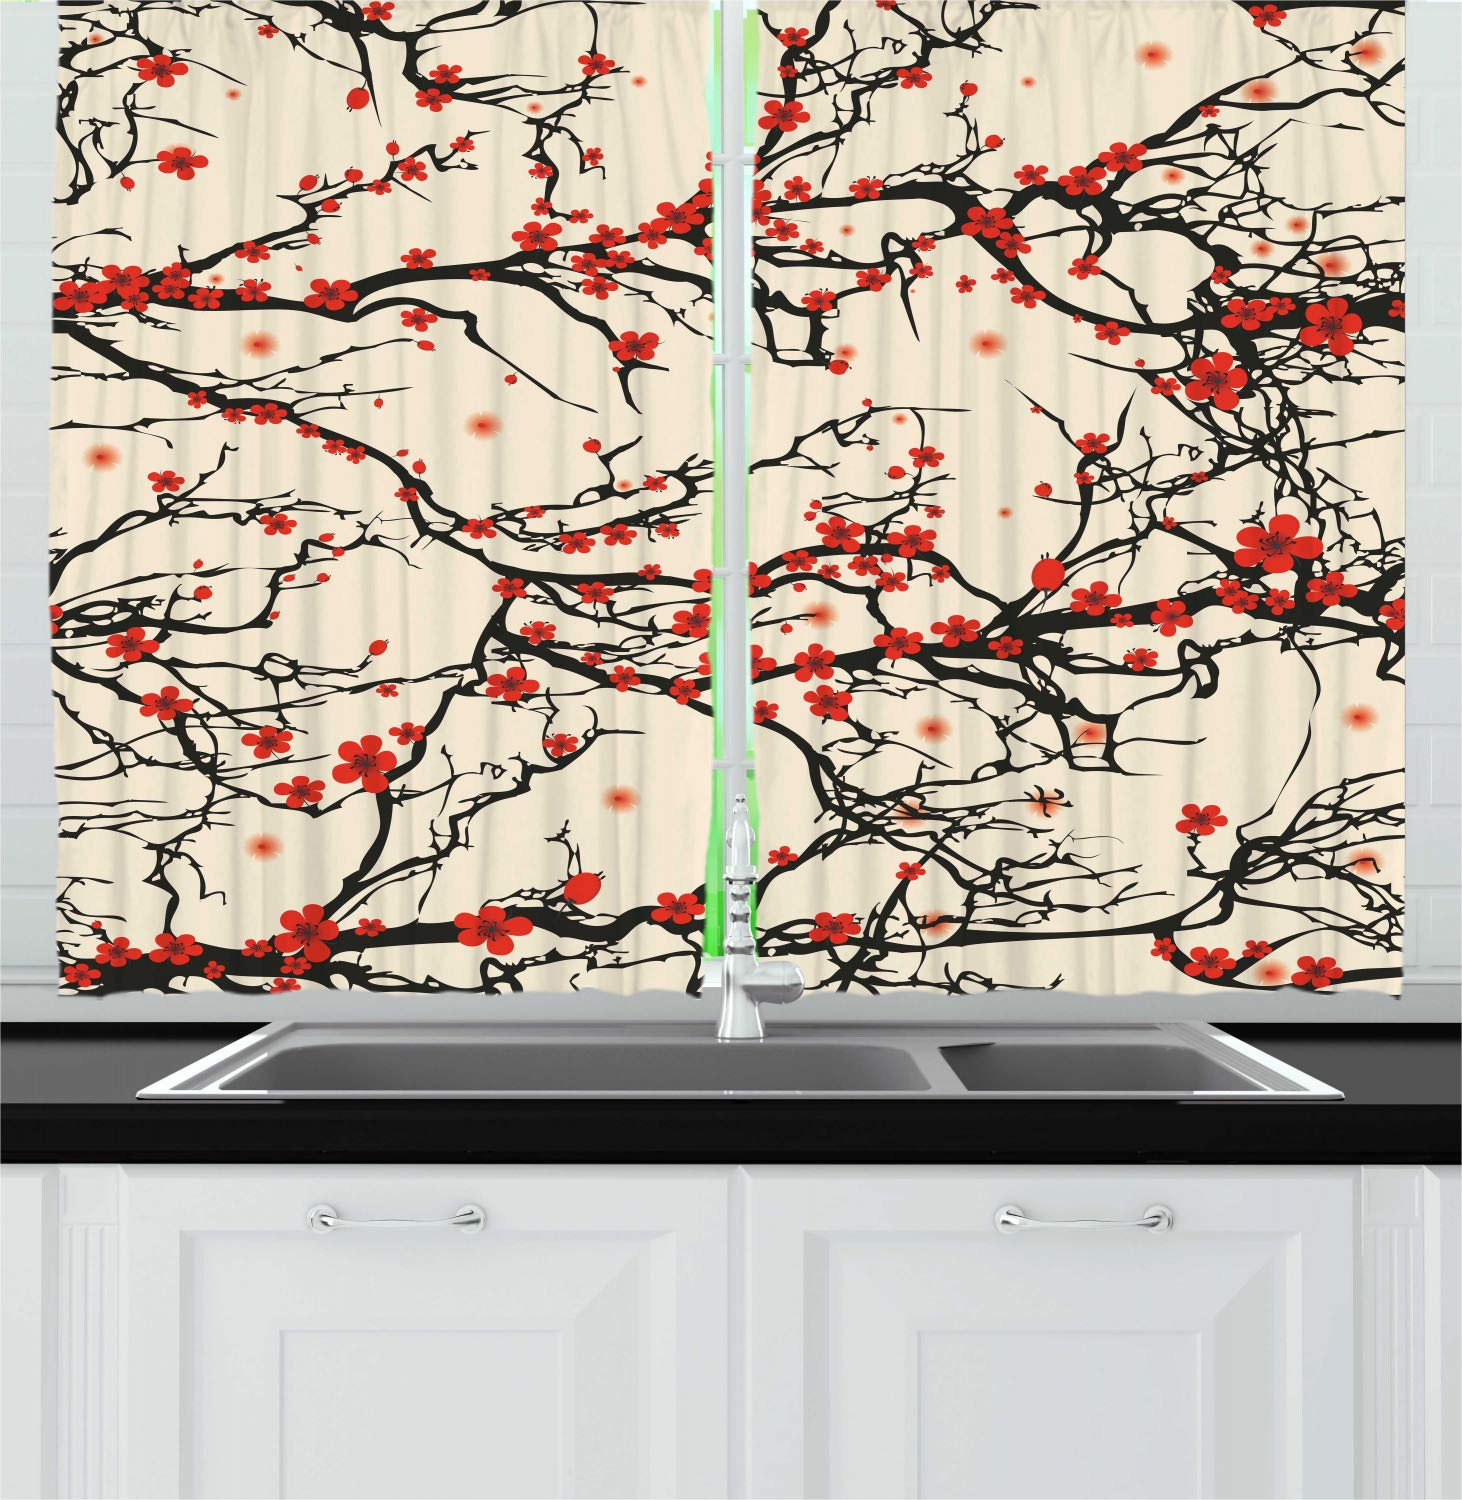 Ambesonne Japanese Kitchen Curtains, Asian Nature Cherry Blossom Sakura Branch Flowers Art Print, Window Drapes 2 Panel Set for Kitchen Cafe, 55 W X 39 L Inches, Cream Vermilion and Dark Brown